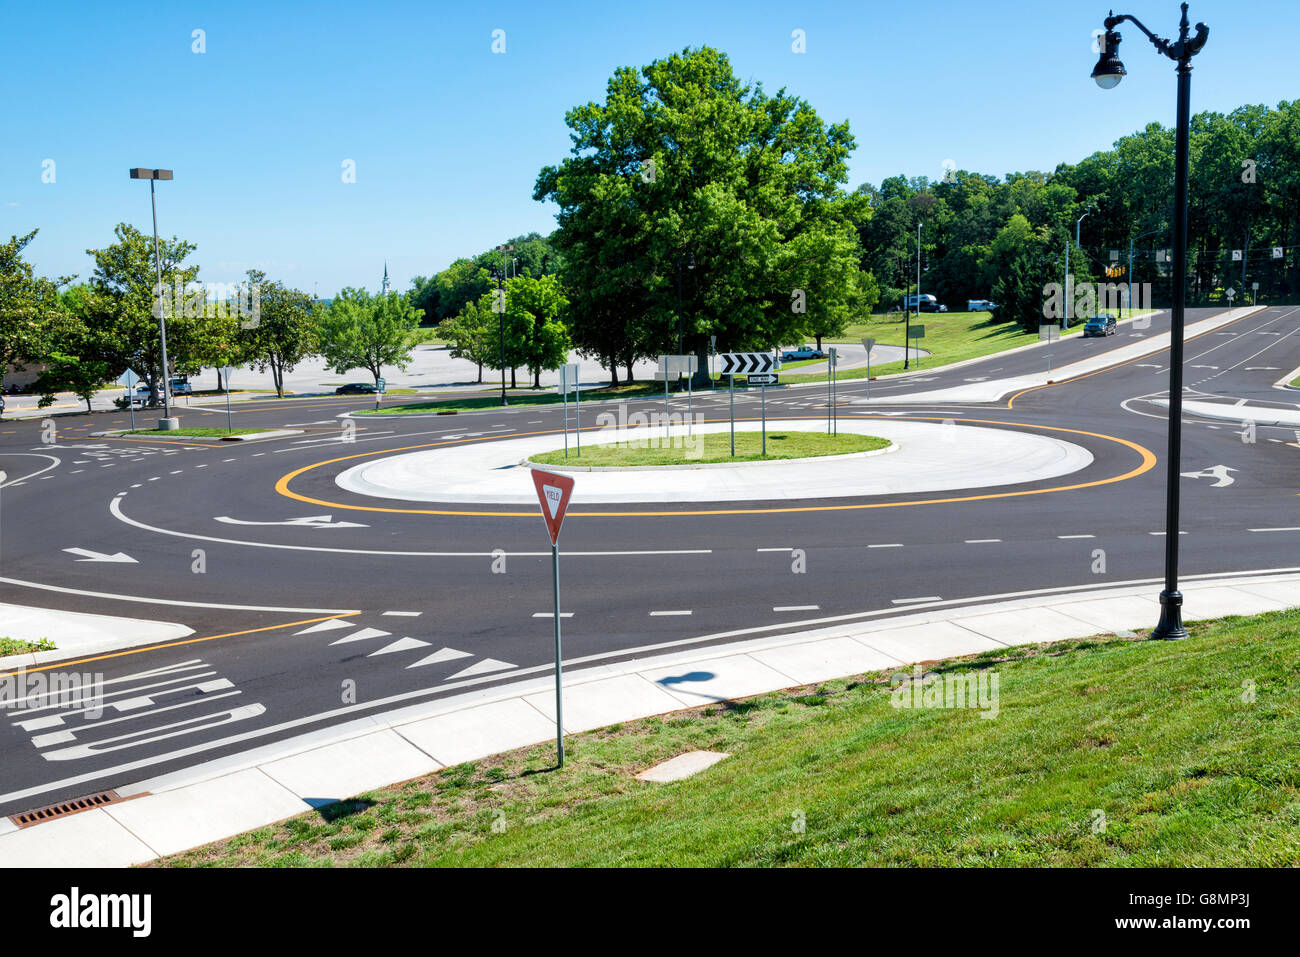 Traffic roundabout intersection in the suburbs. Horizontal shot - Stock Image